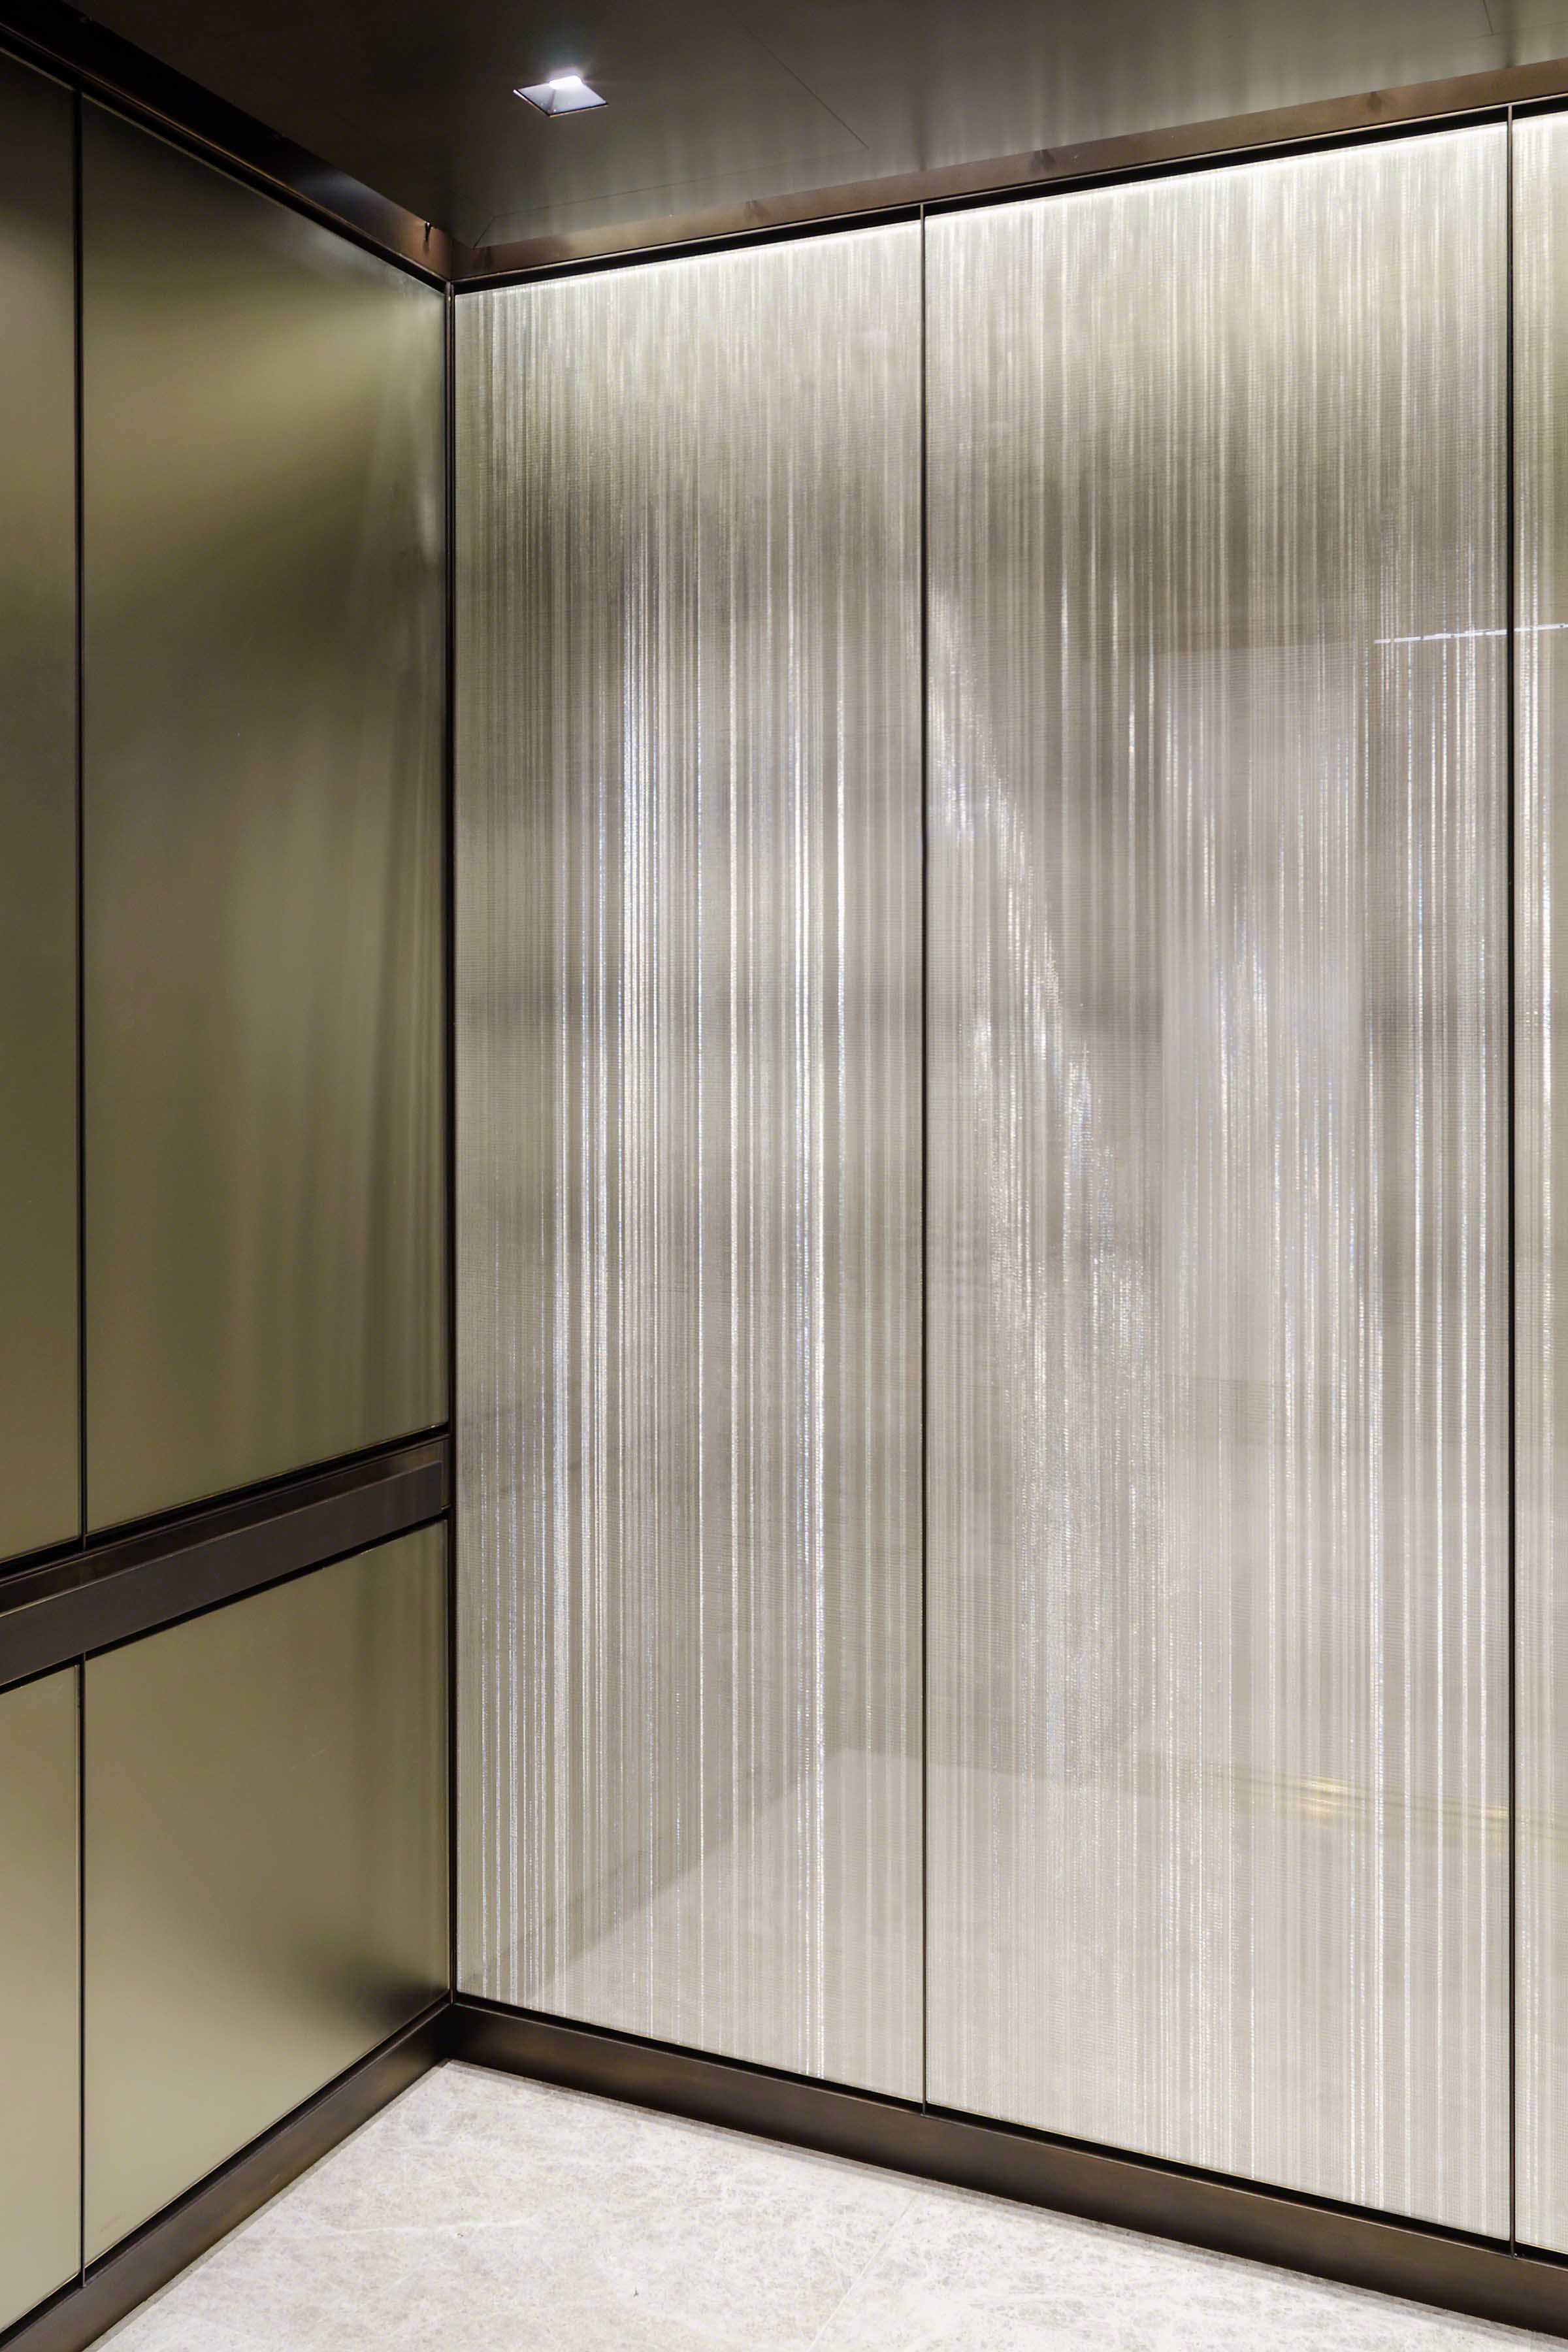 Washington-DC-USA-Office-Building-Project-Elevator-Woven-Metal-Glass-Lamination-Sophie-Mallebranche-Paris